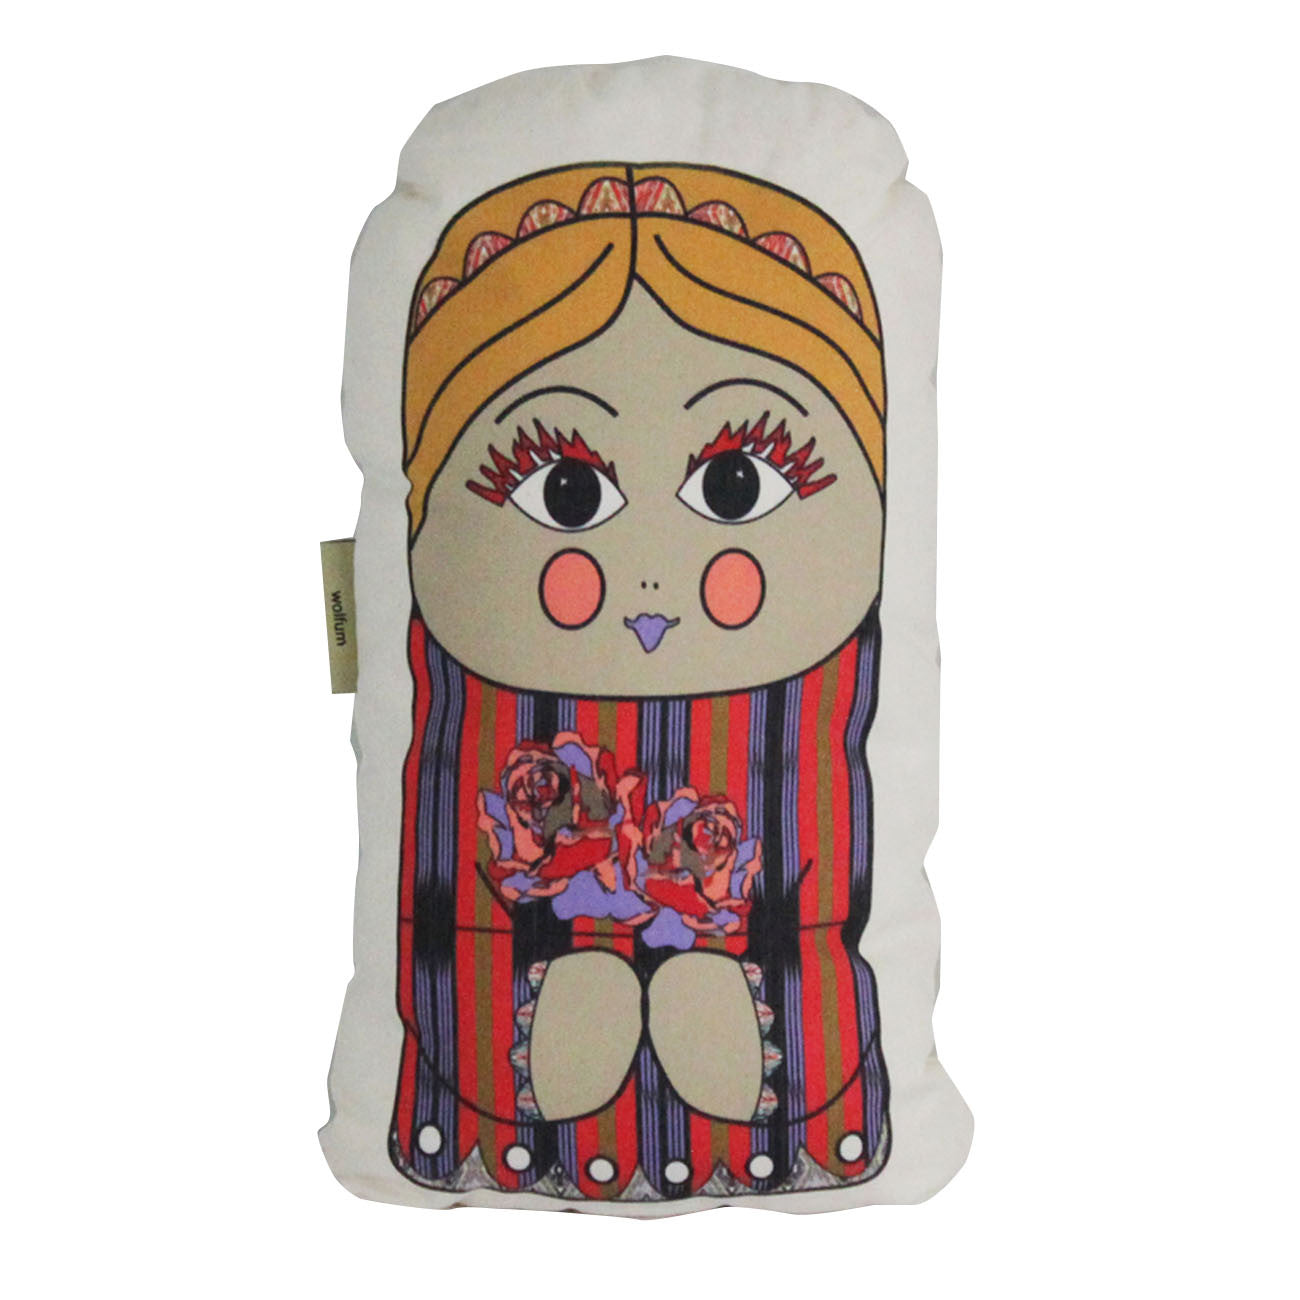 sasha plush pillow doll - small